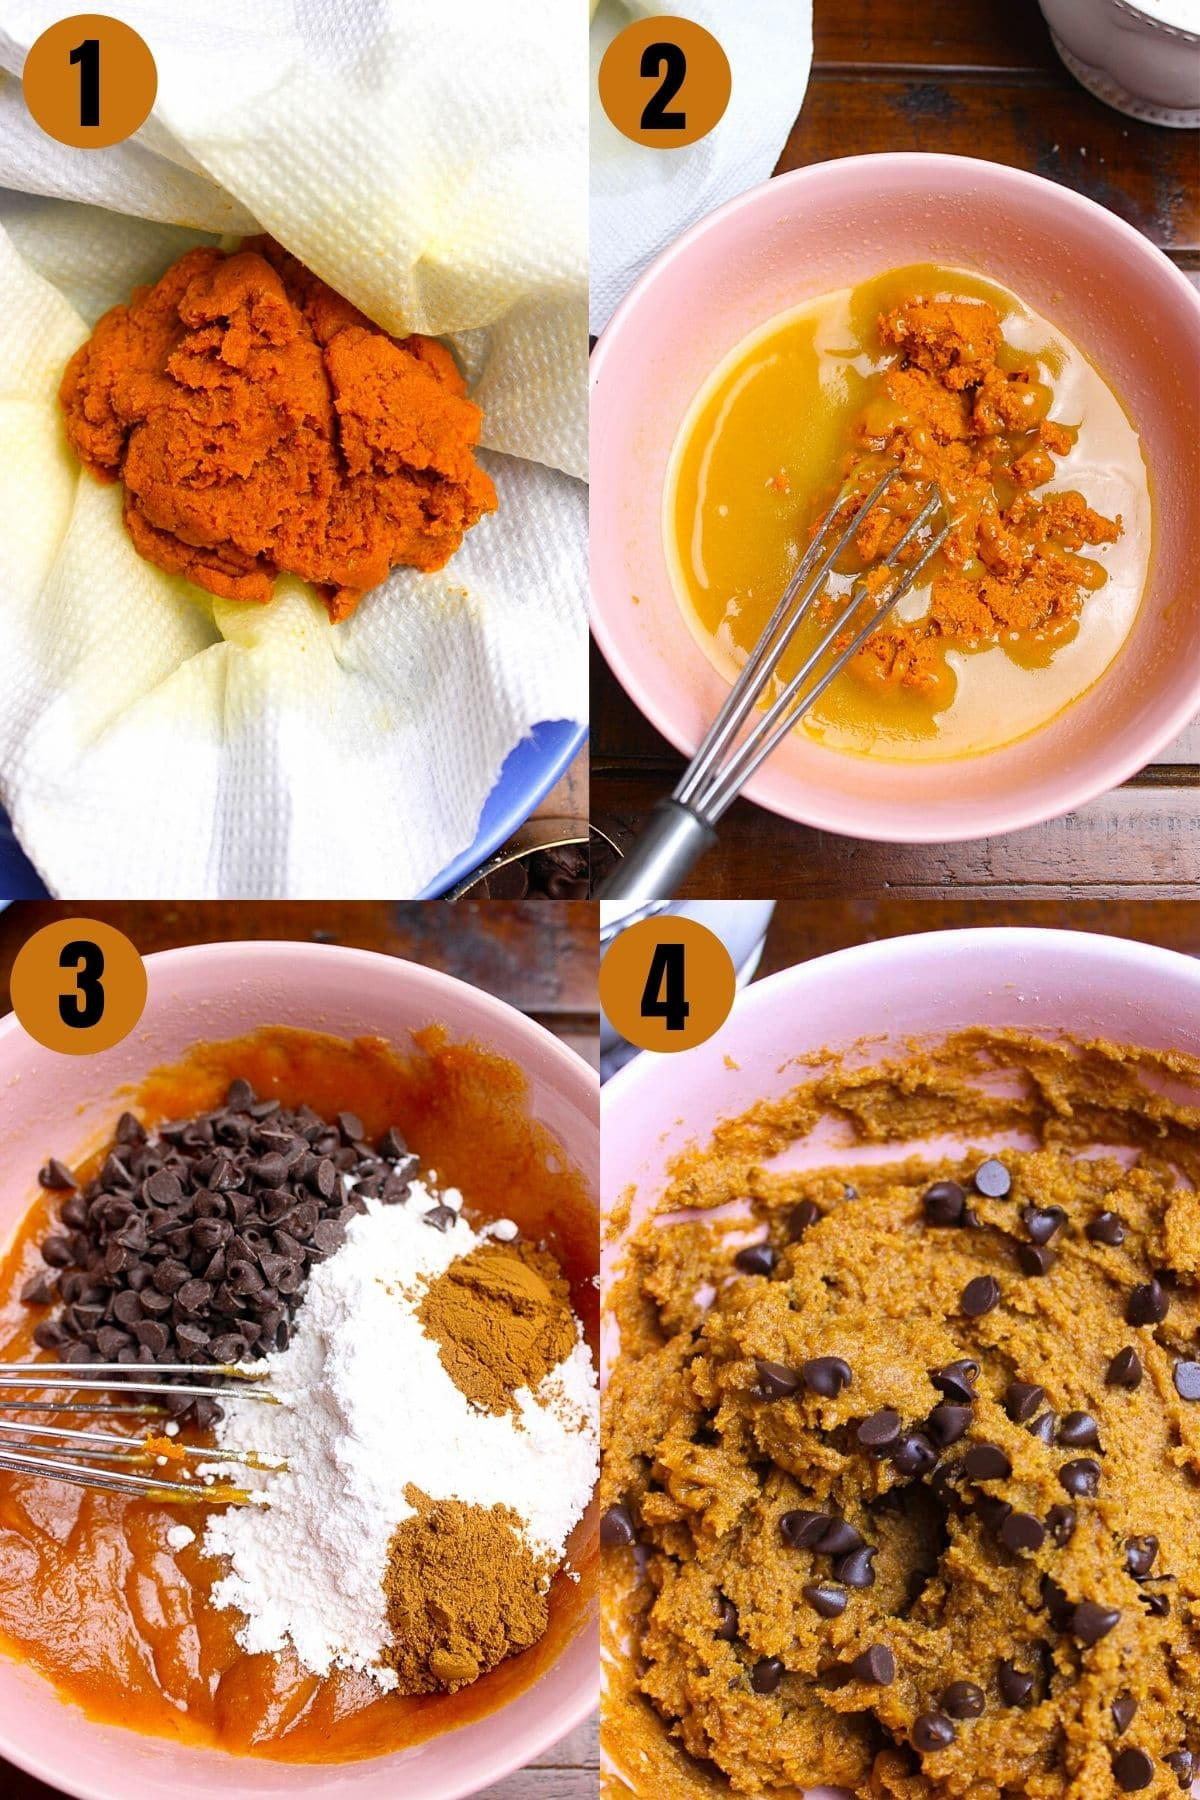 Step by step process to make Pumpkin Cookies by mixing all ingredients and forming dough.